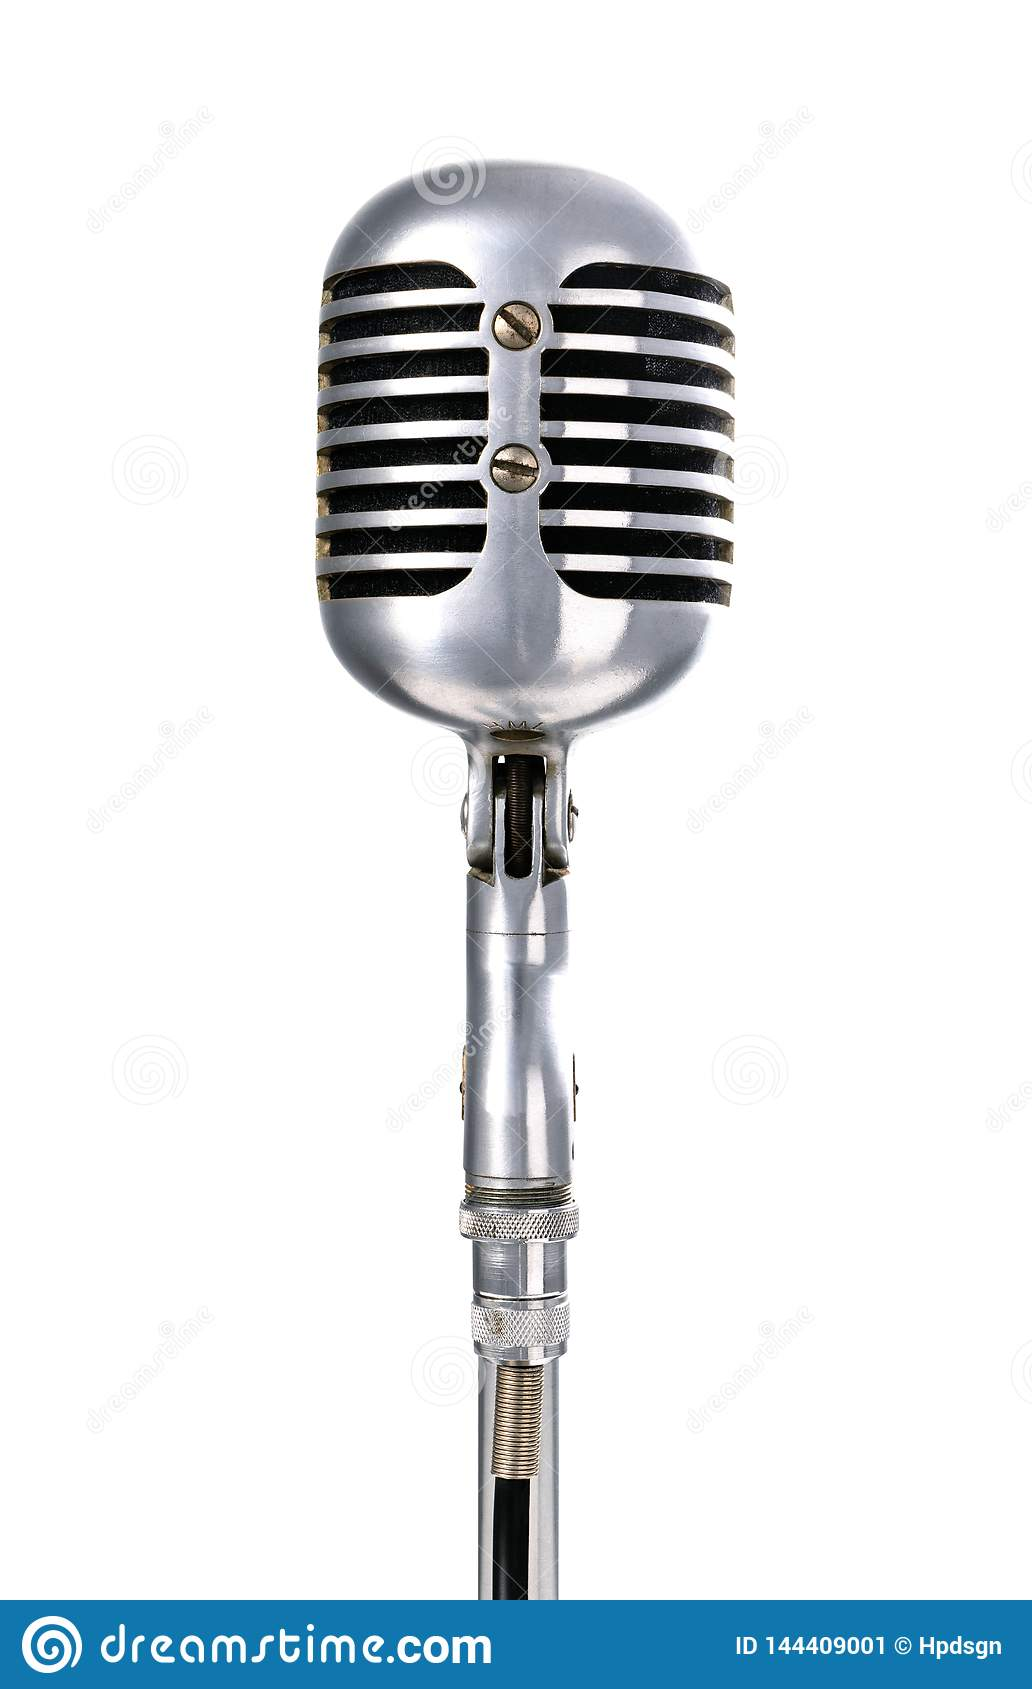 Back view of a Shure 55 vintage microphone